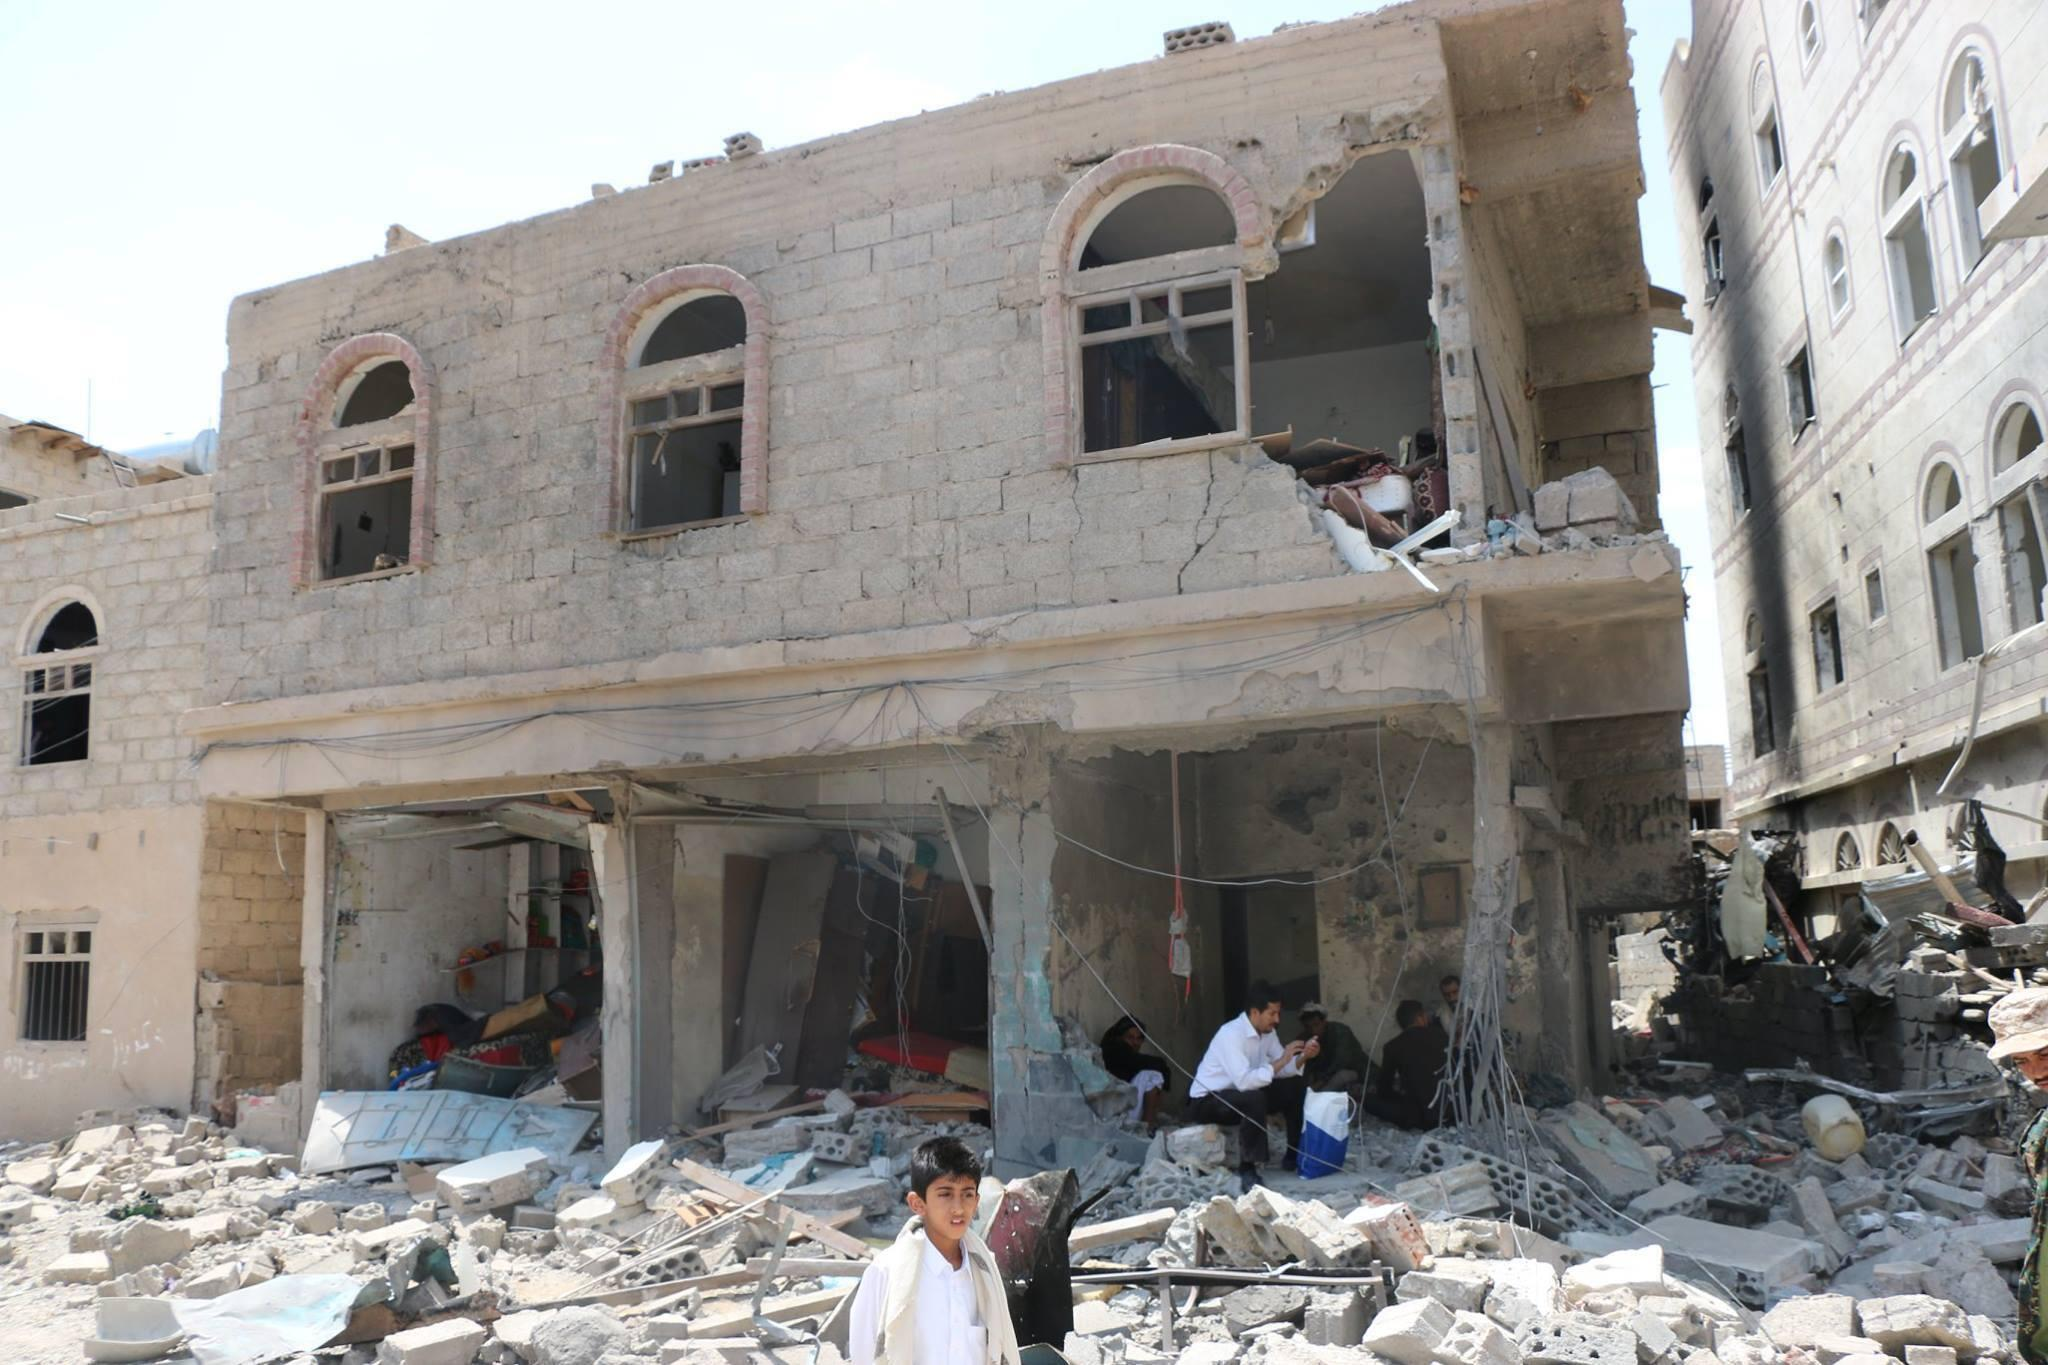 A residential area targeted by coalition airstrikes in Sana'a. Photo sent by Karem Alenzii.